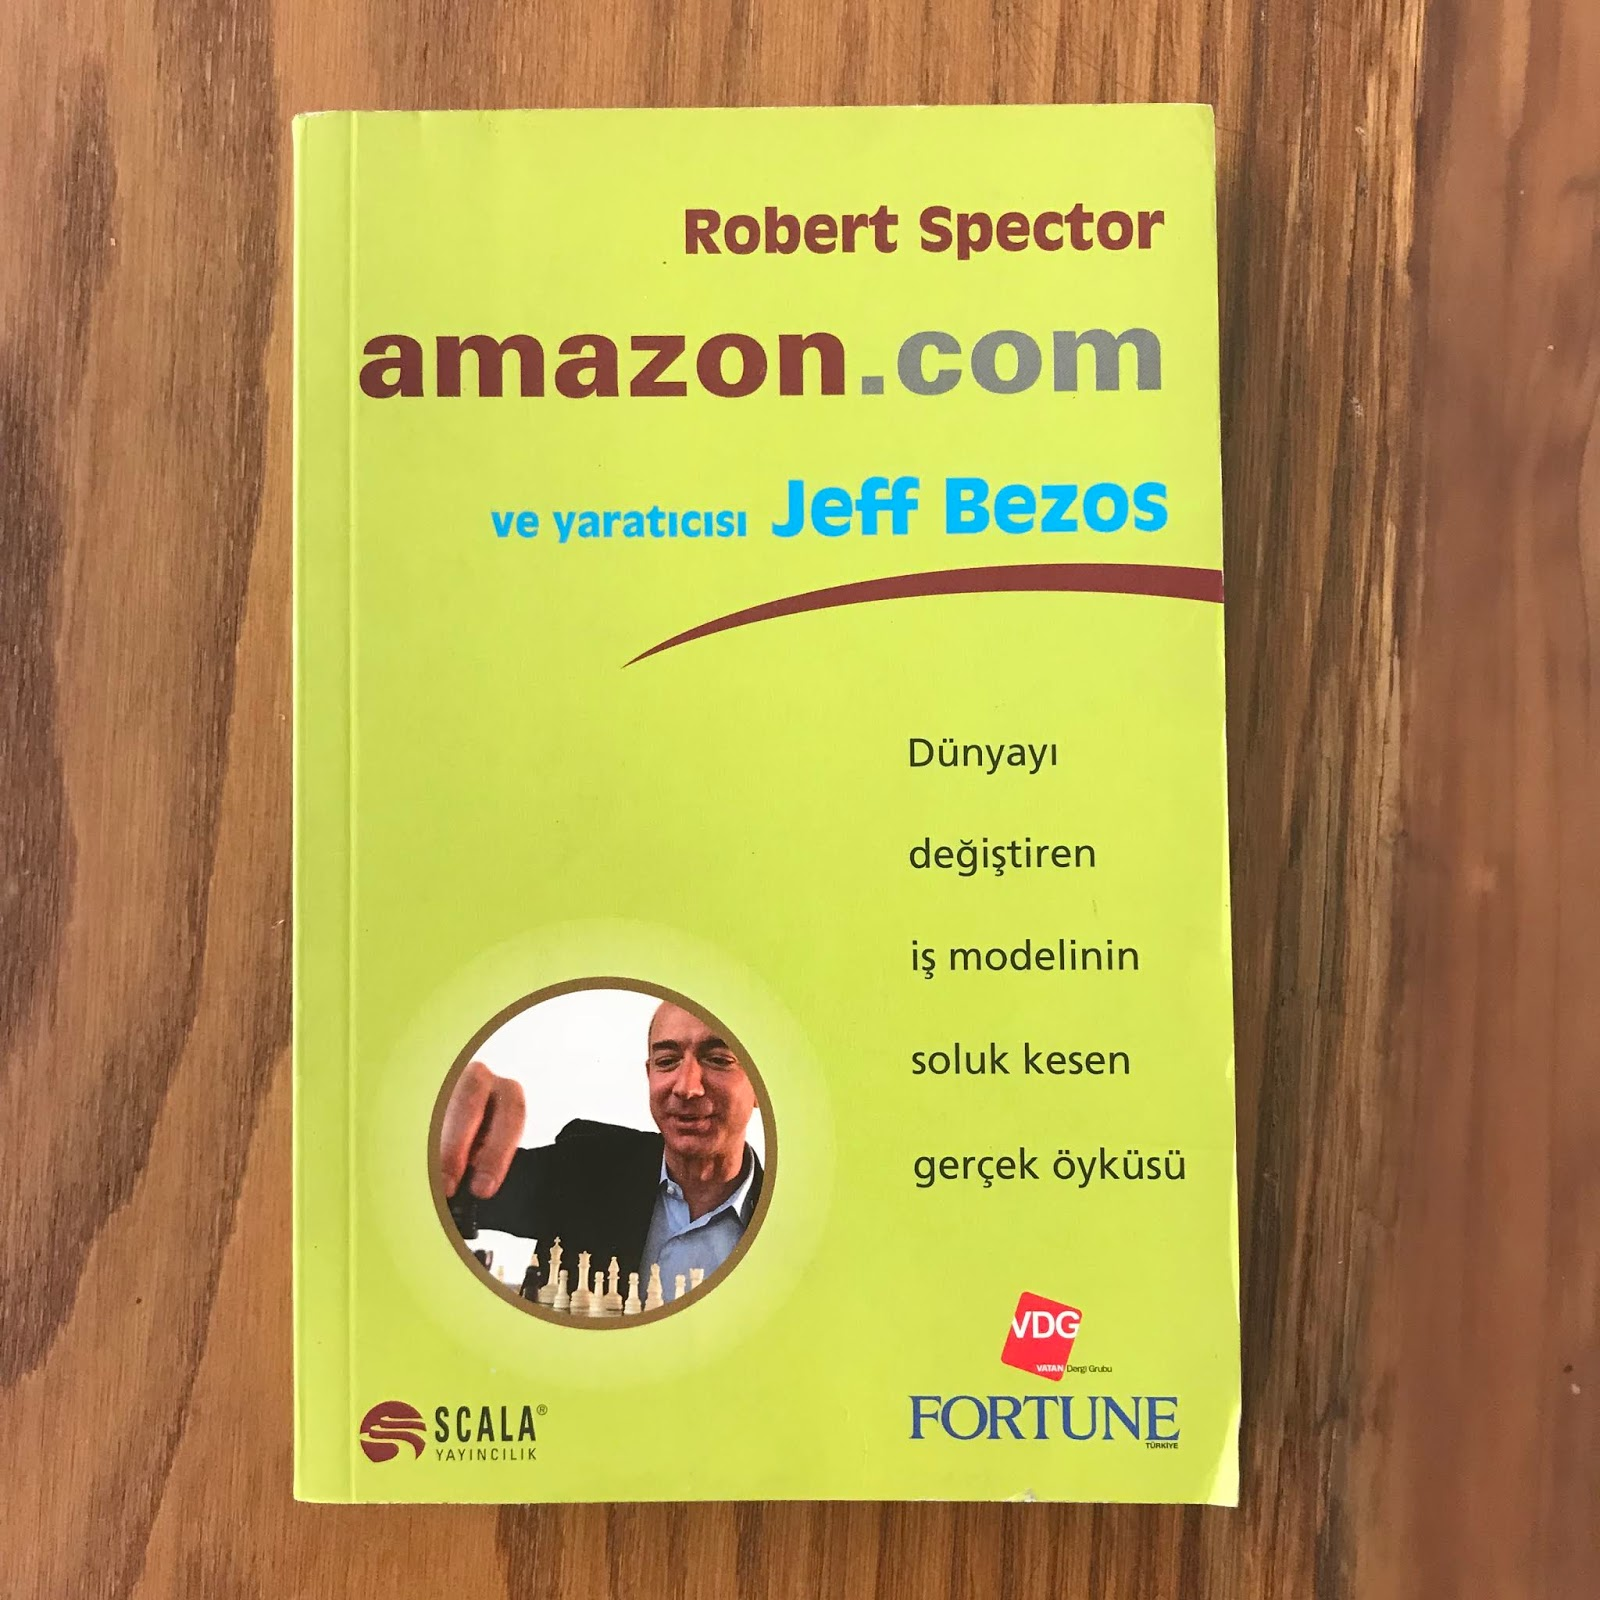 Amazon.com ve Yaraticisi Jeff Bezos